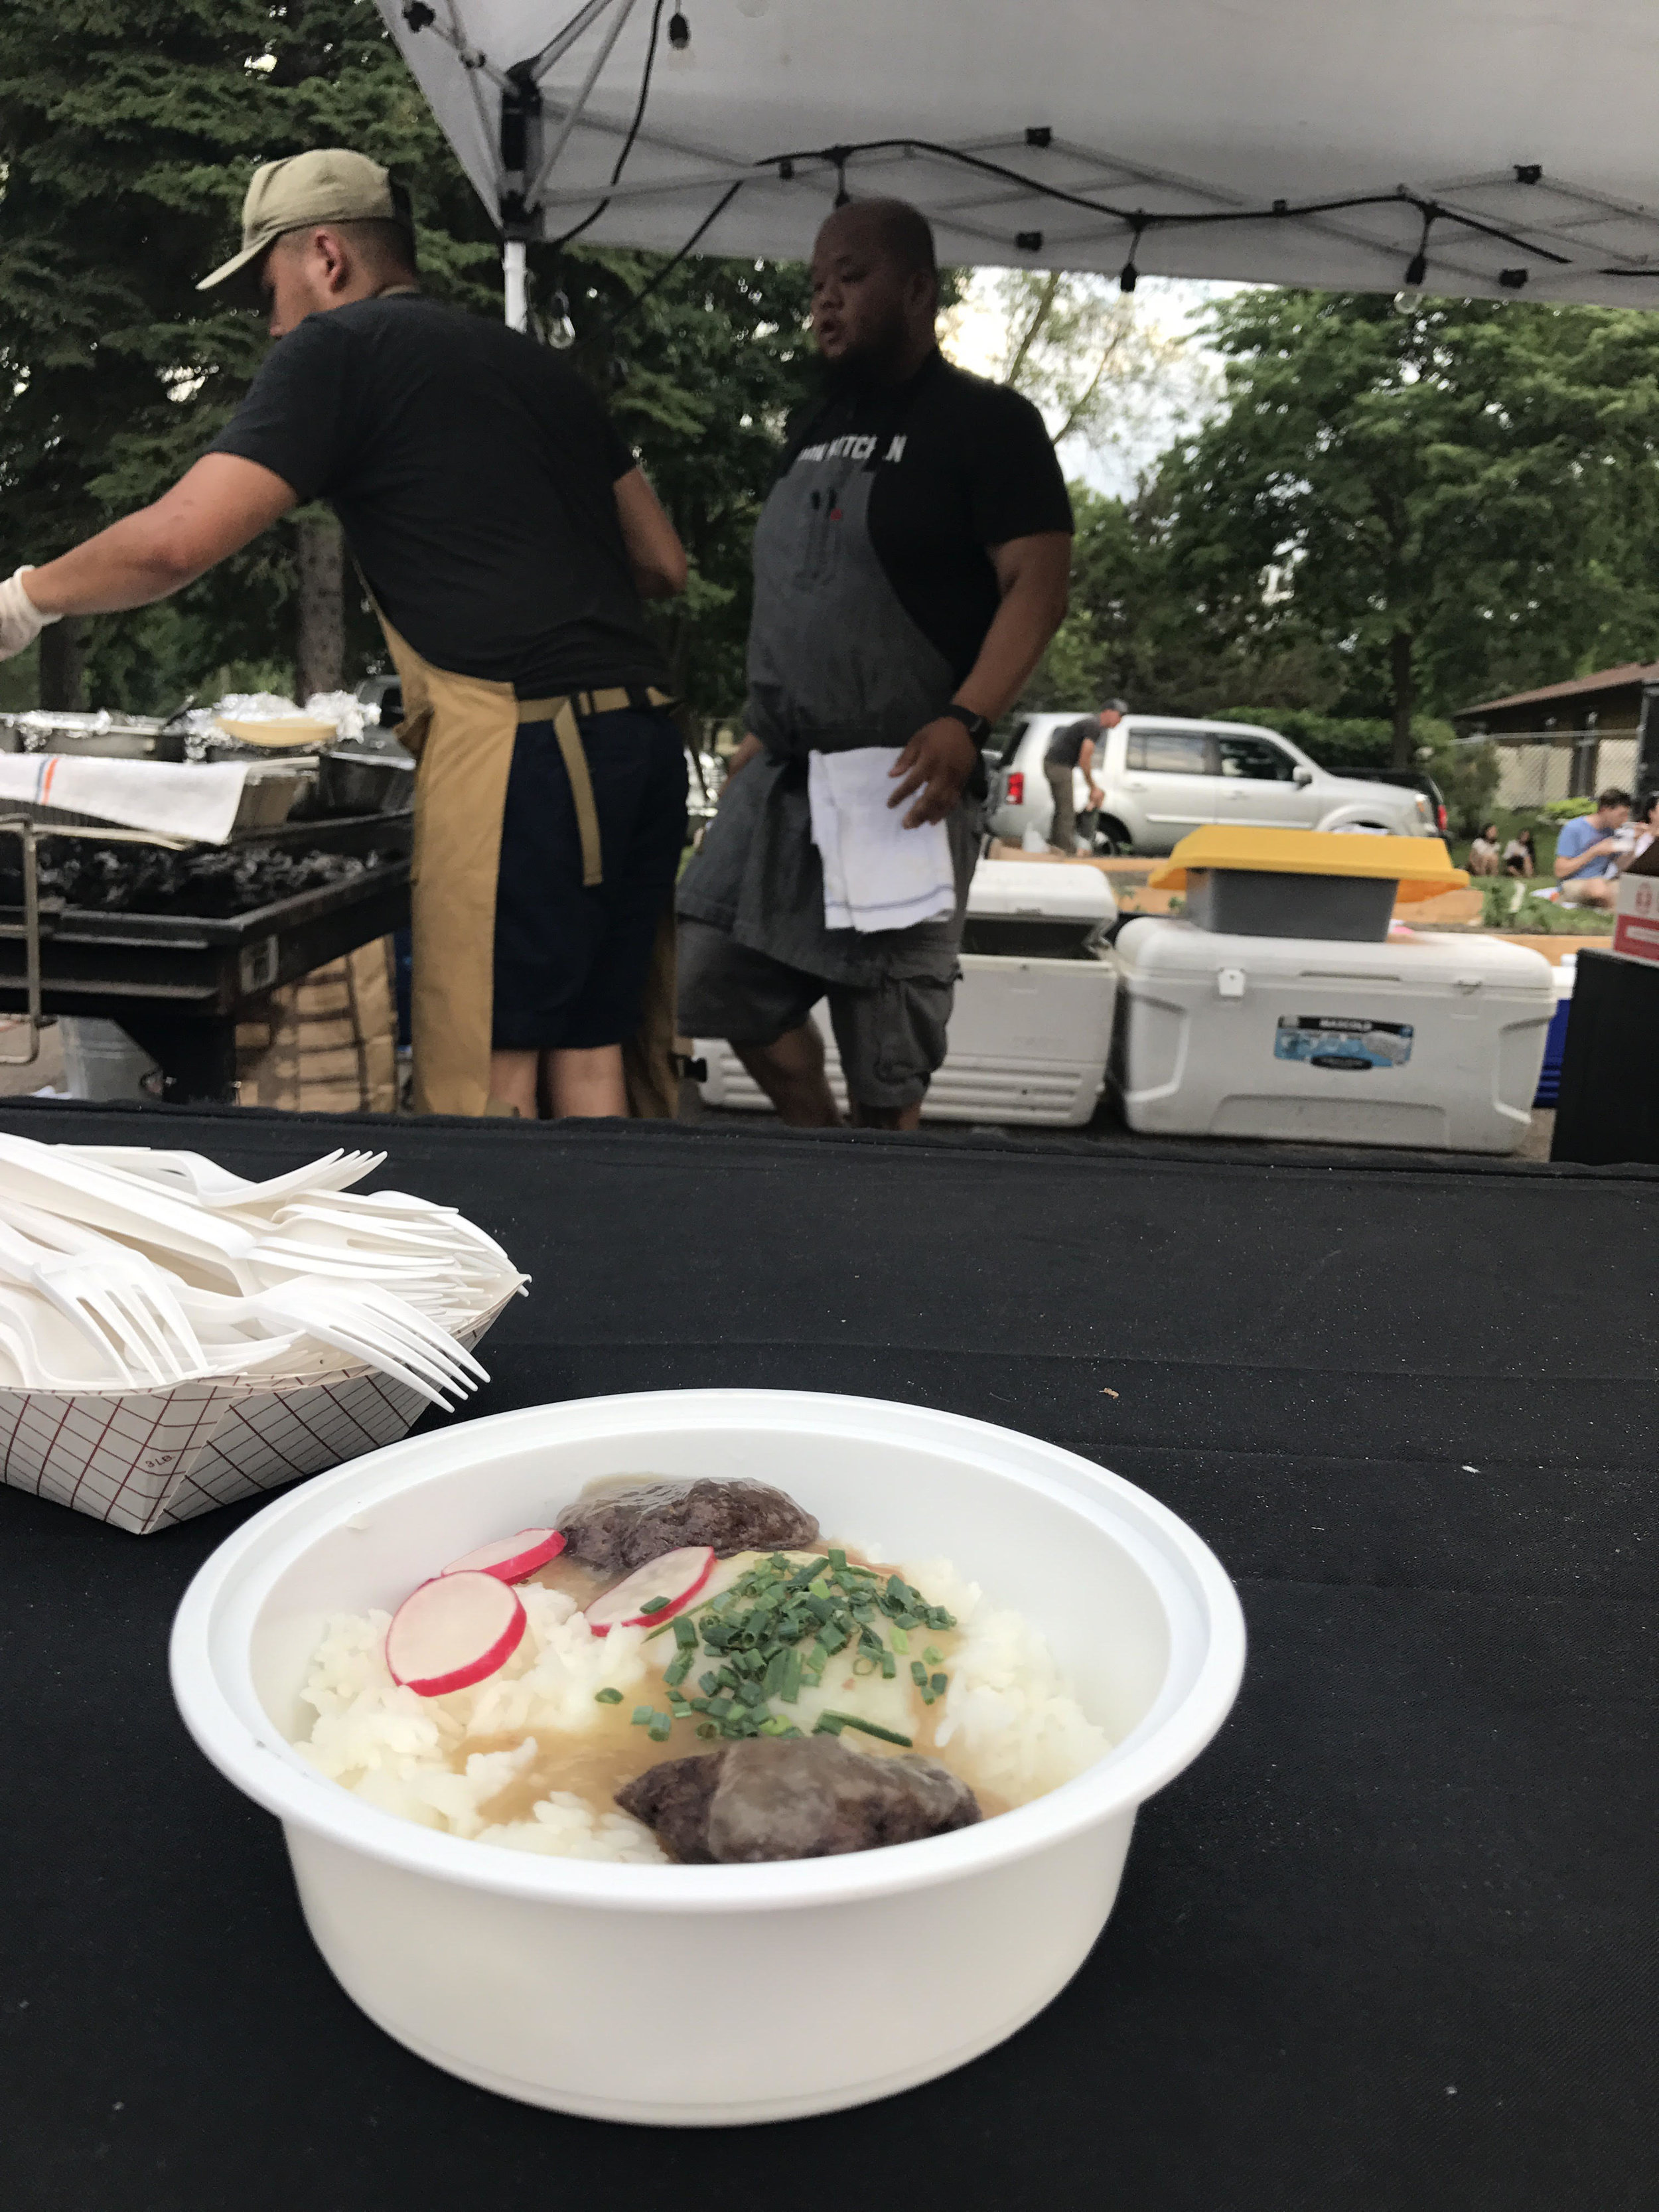 Loco Moco, cooked up by Yia (right) and team at Little Mekong Night Market